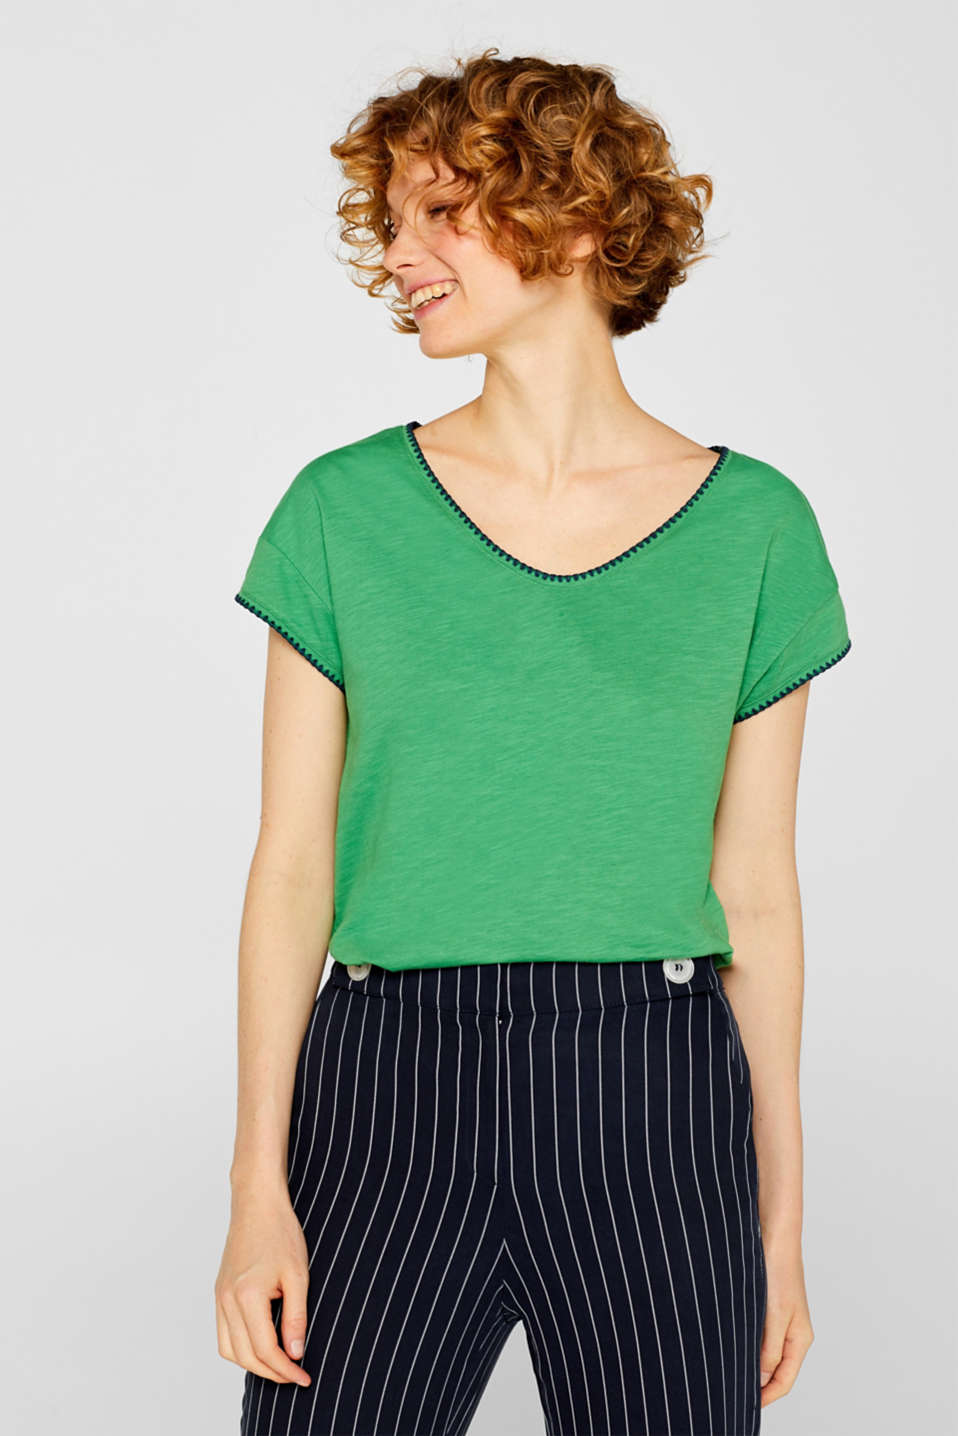 edc - Slub top with contrasting embroidery, 100% cotton